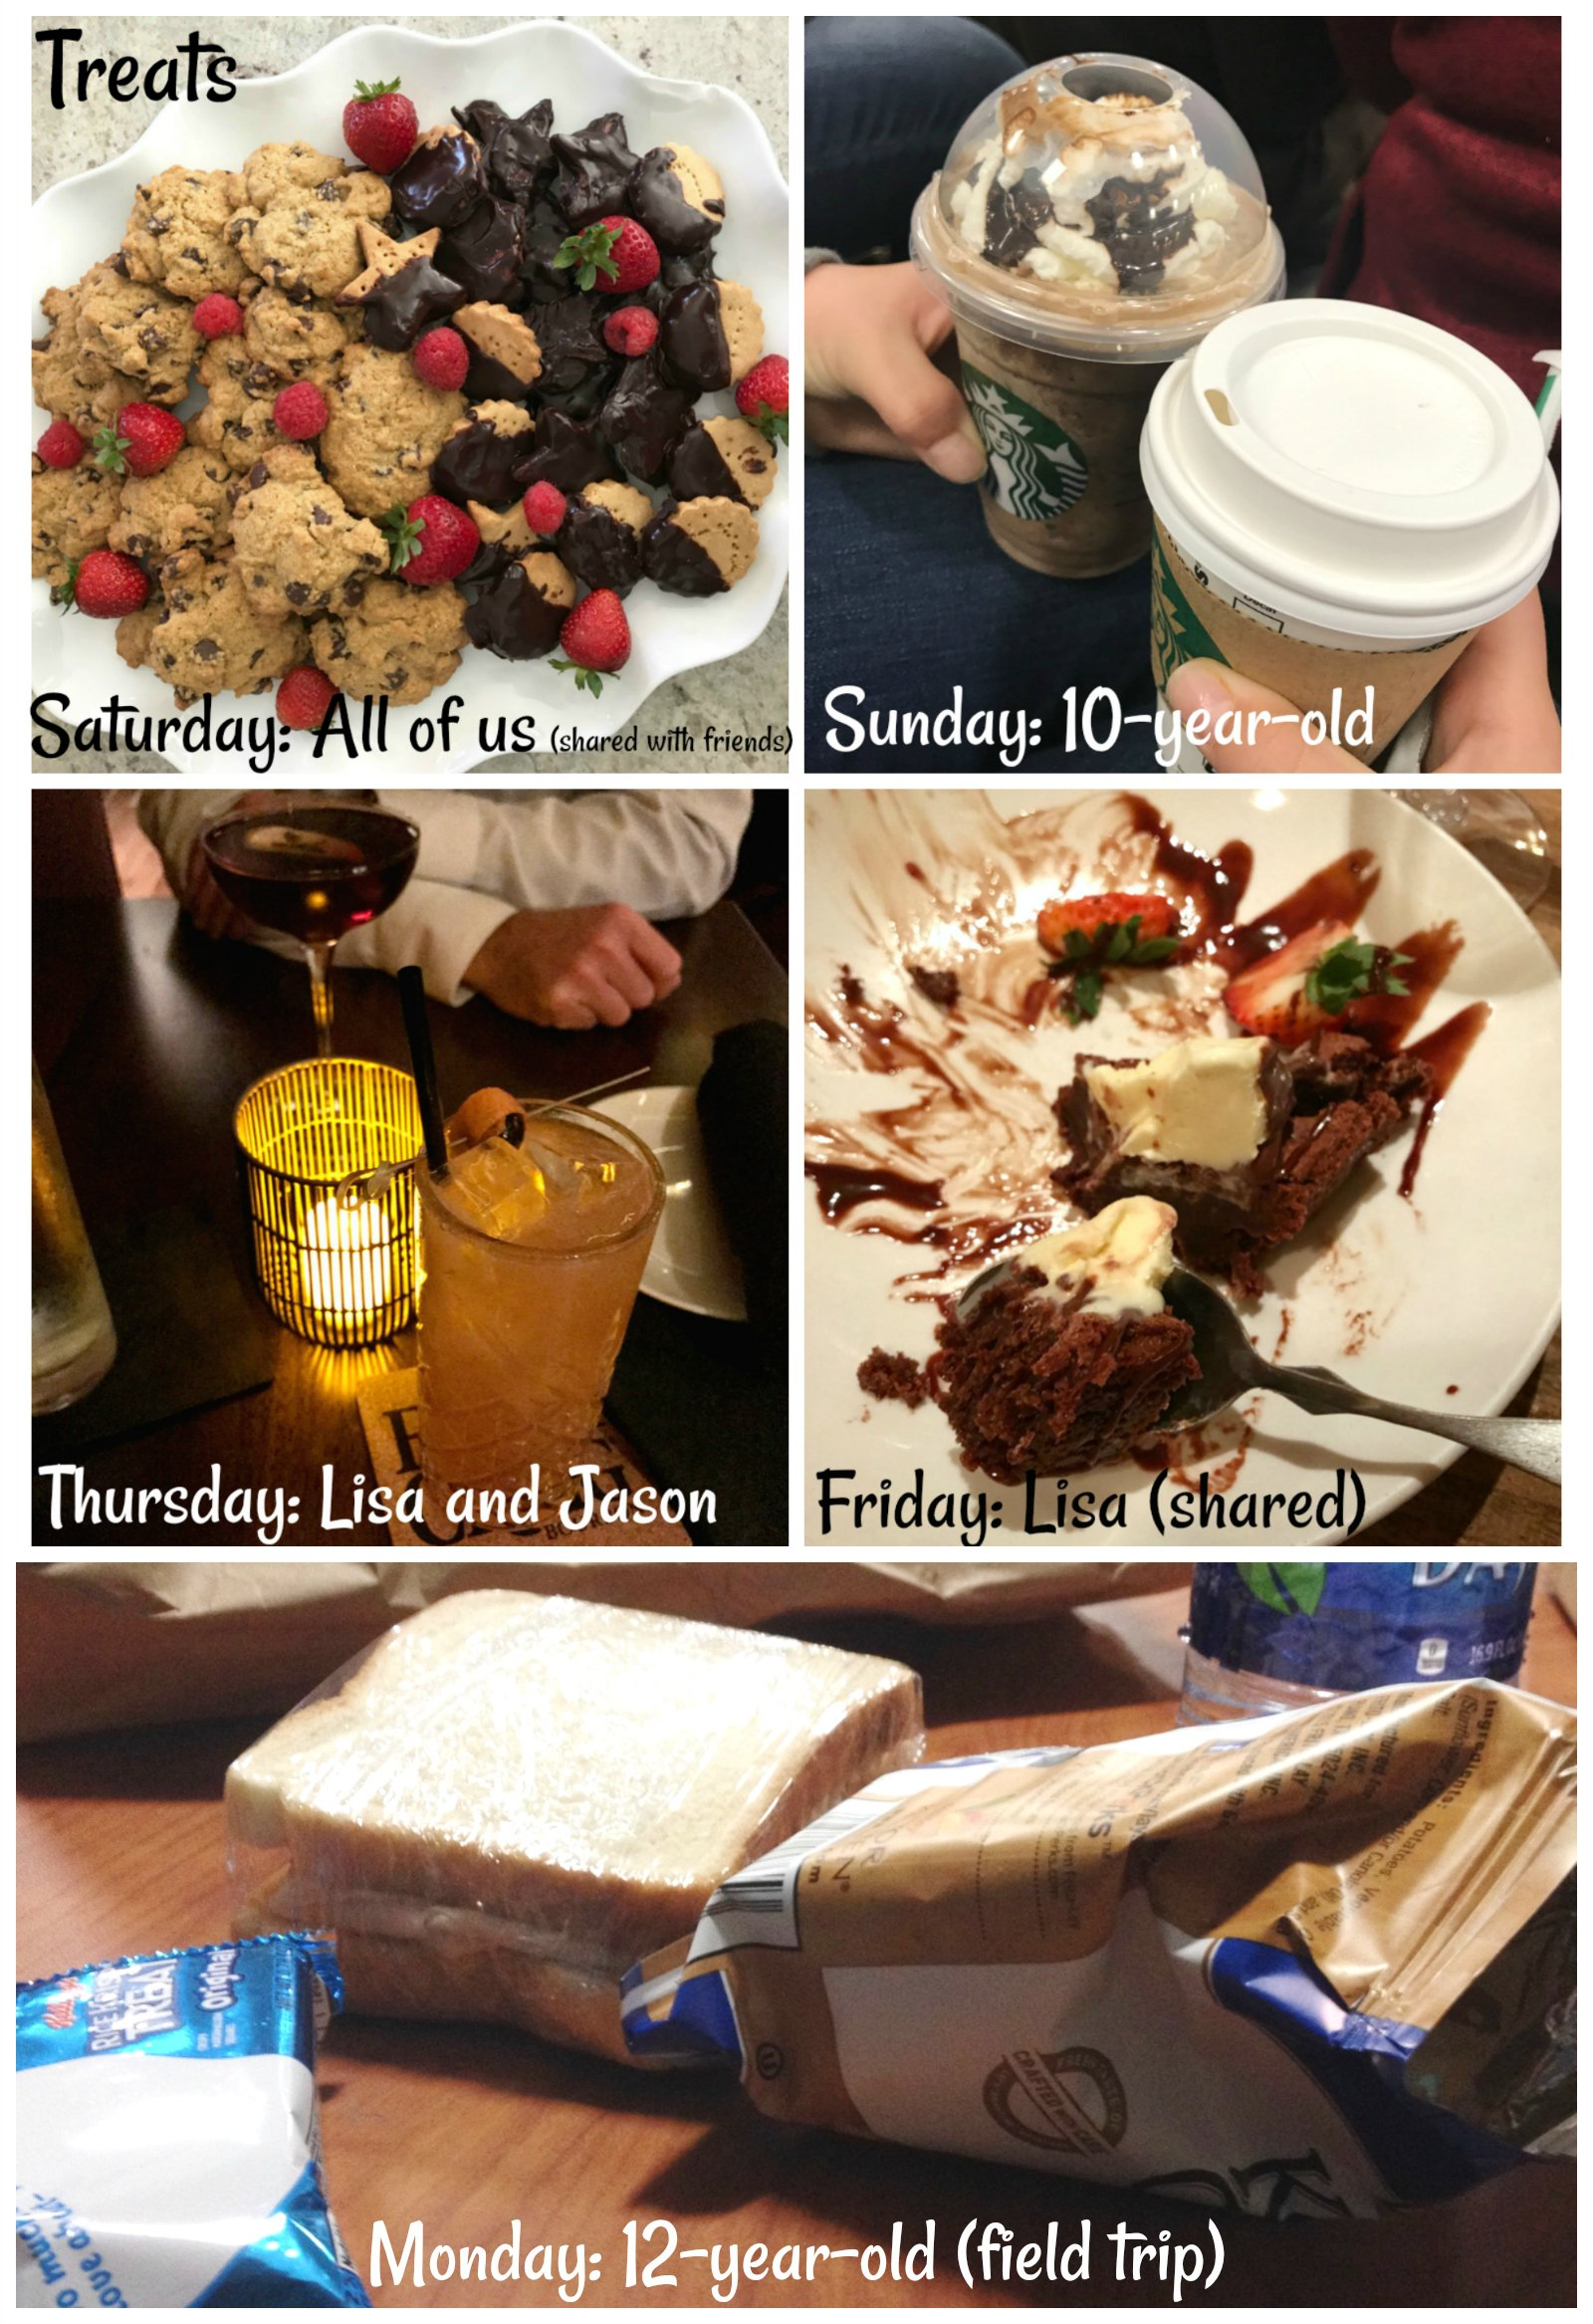 A Week with the Leakes: Treats